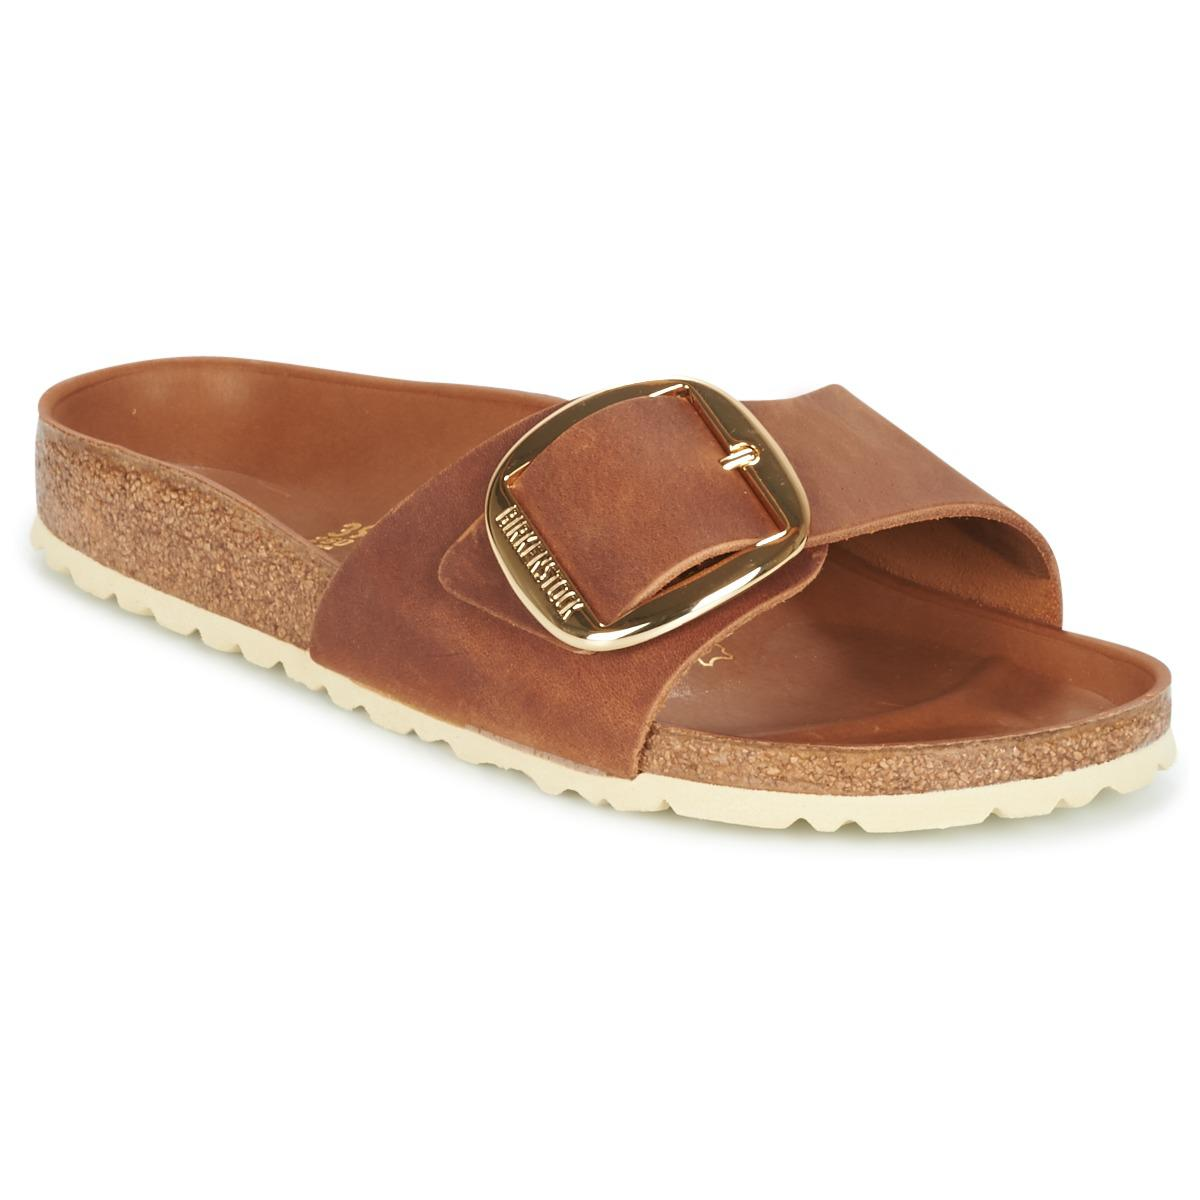 f2d5e395cce Birkenstock Madrid Big Buckle Women s Mules   Casual Shoes In Brown ...